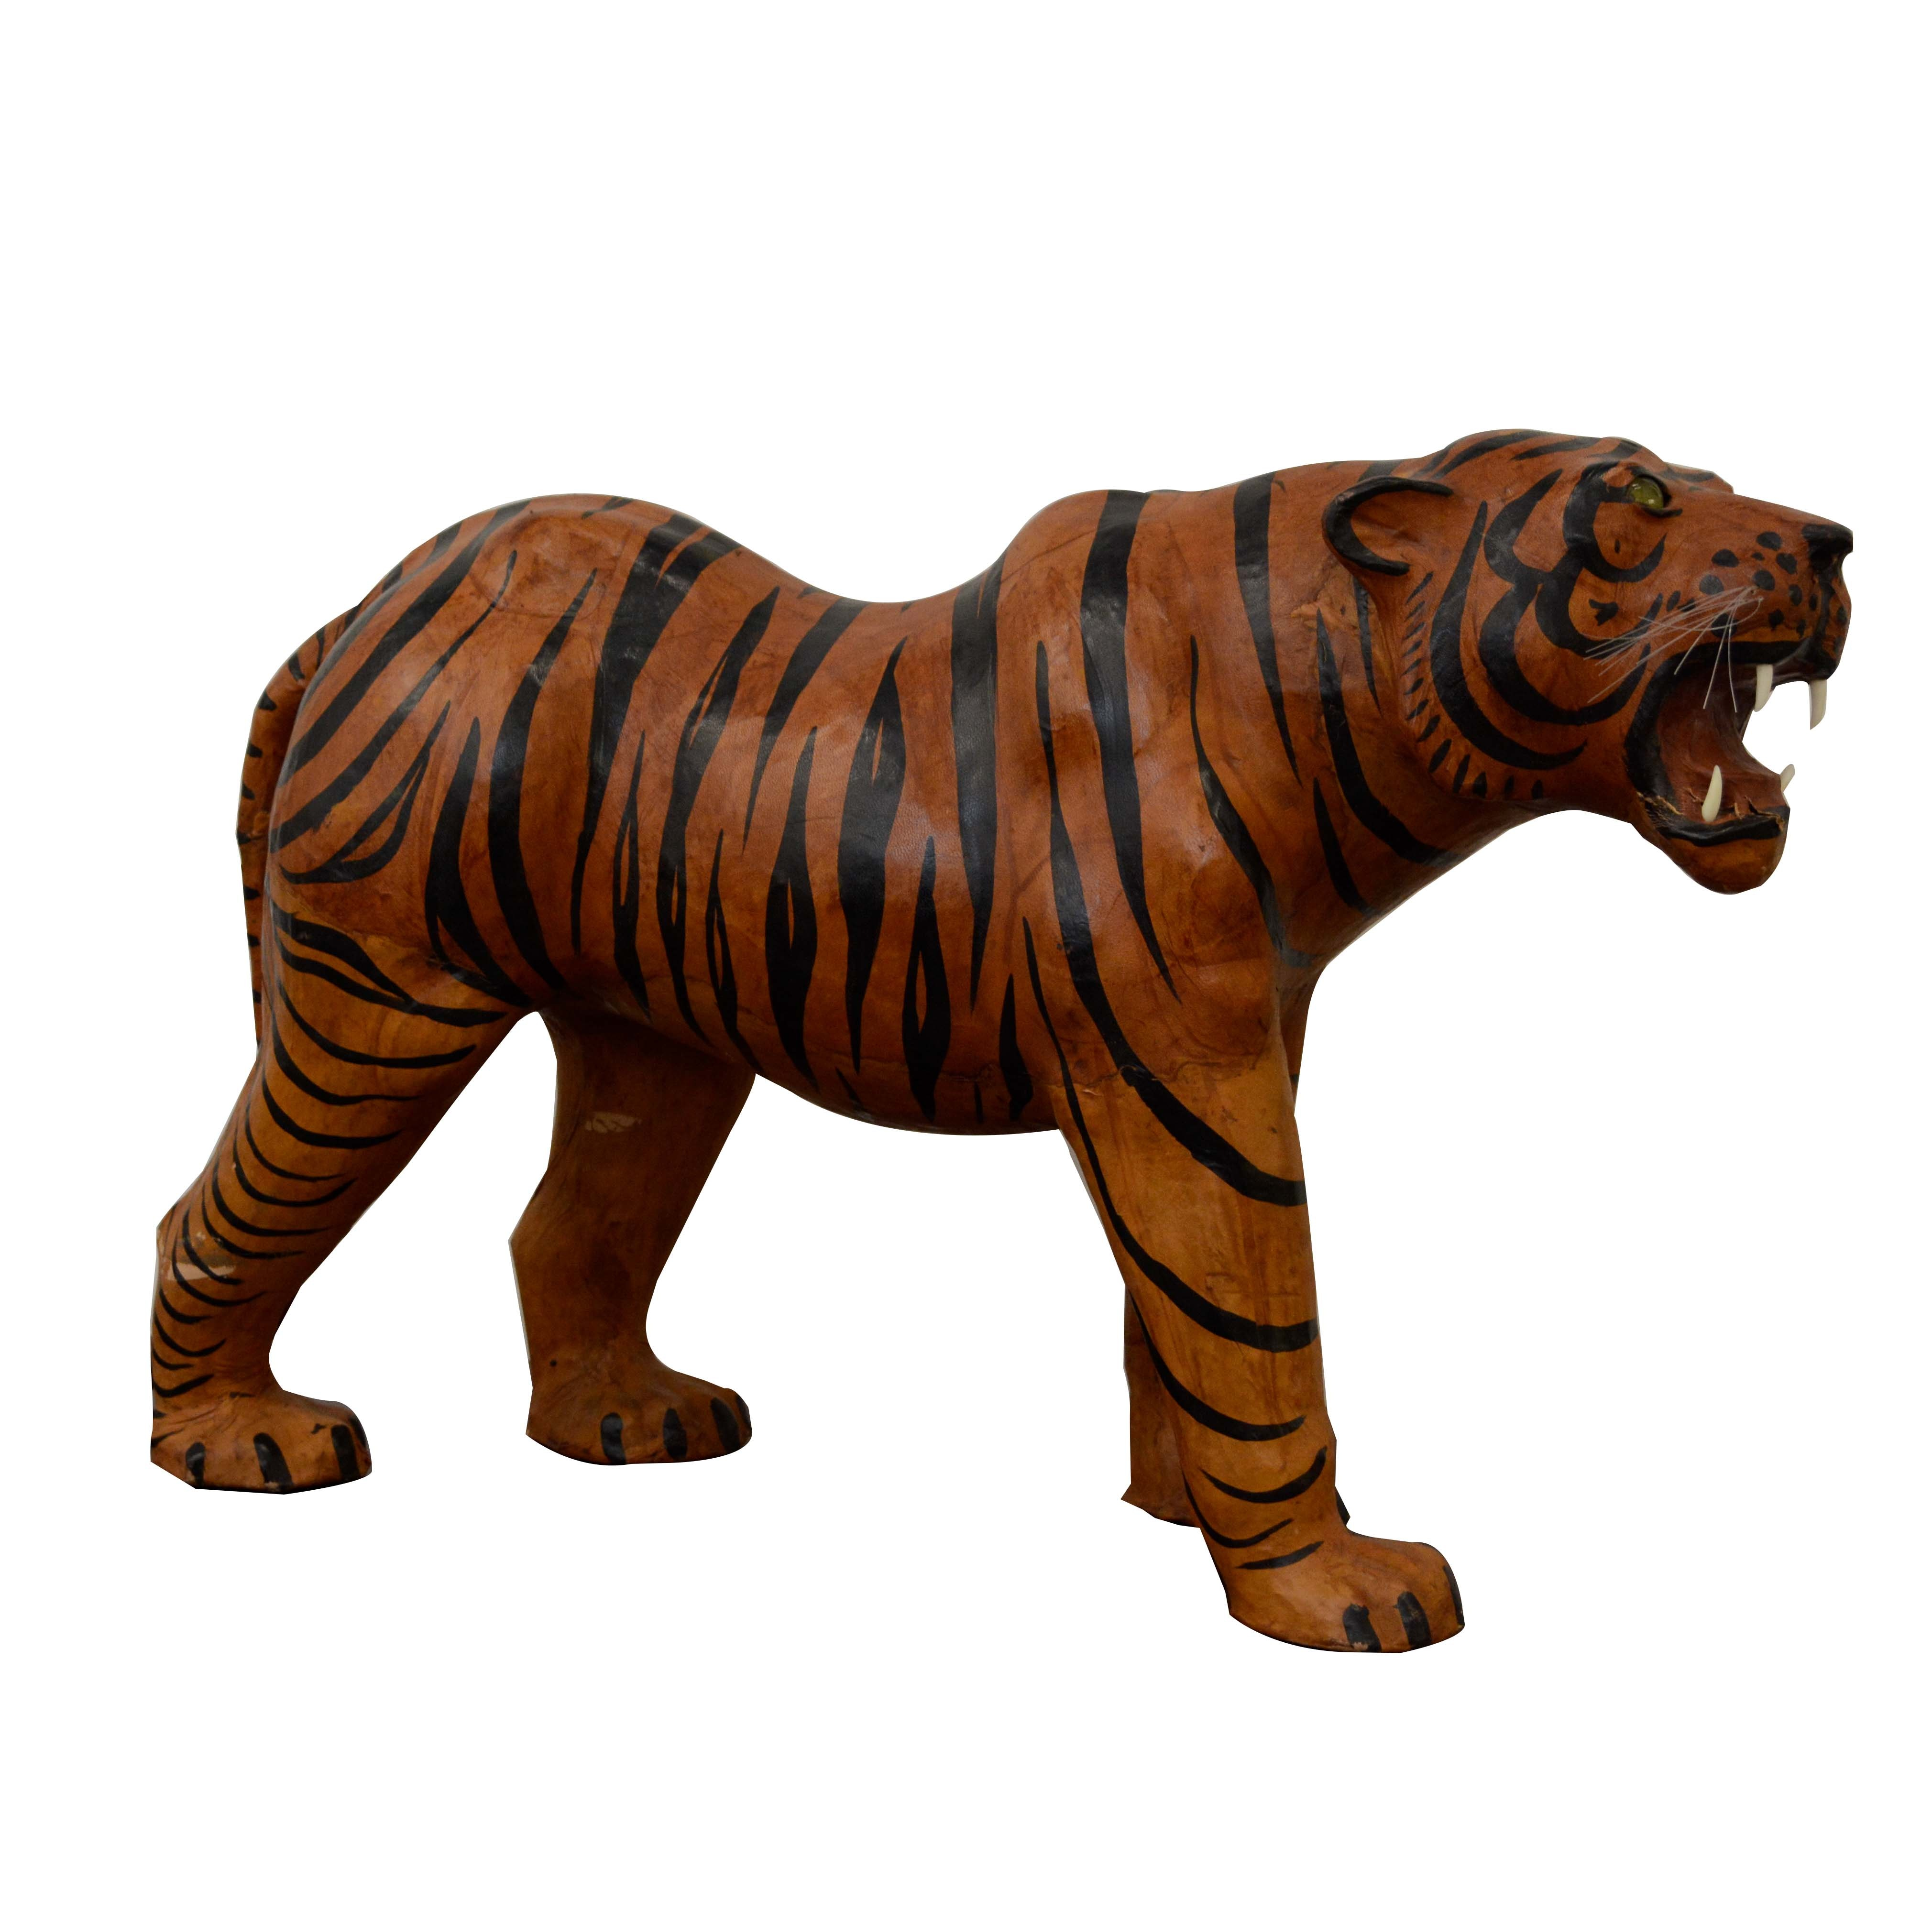 Large Leather-Covered Mixed Media Painted Tiger Sculpture